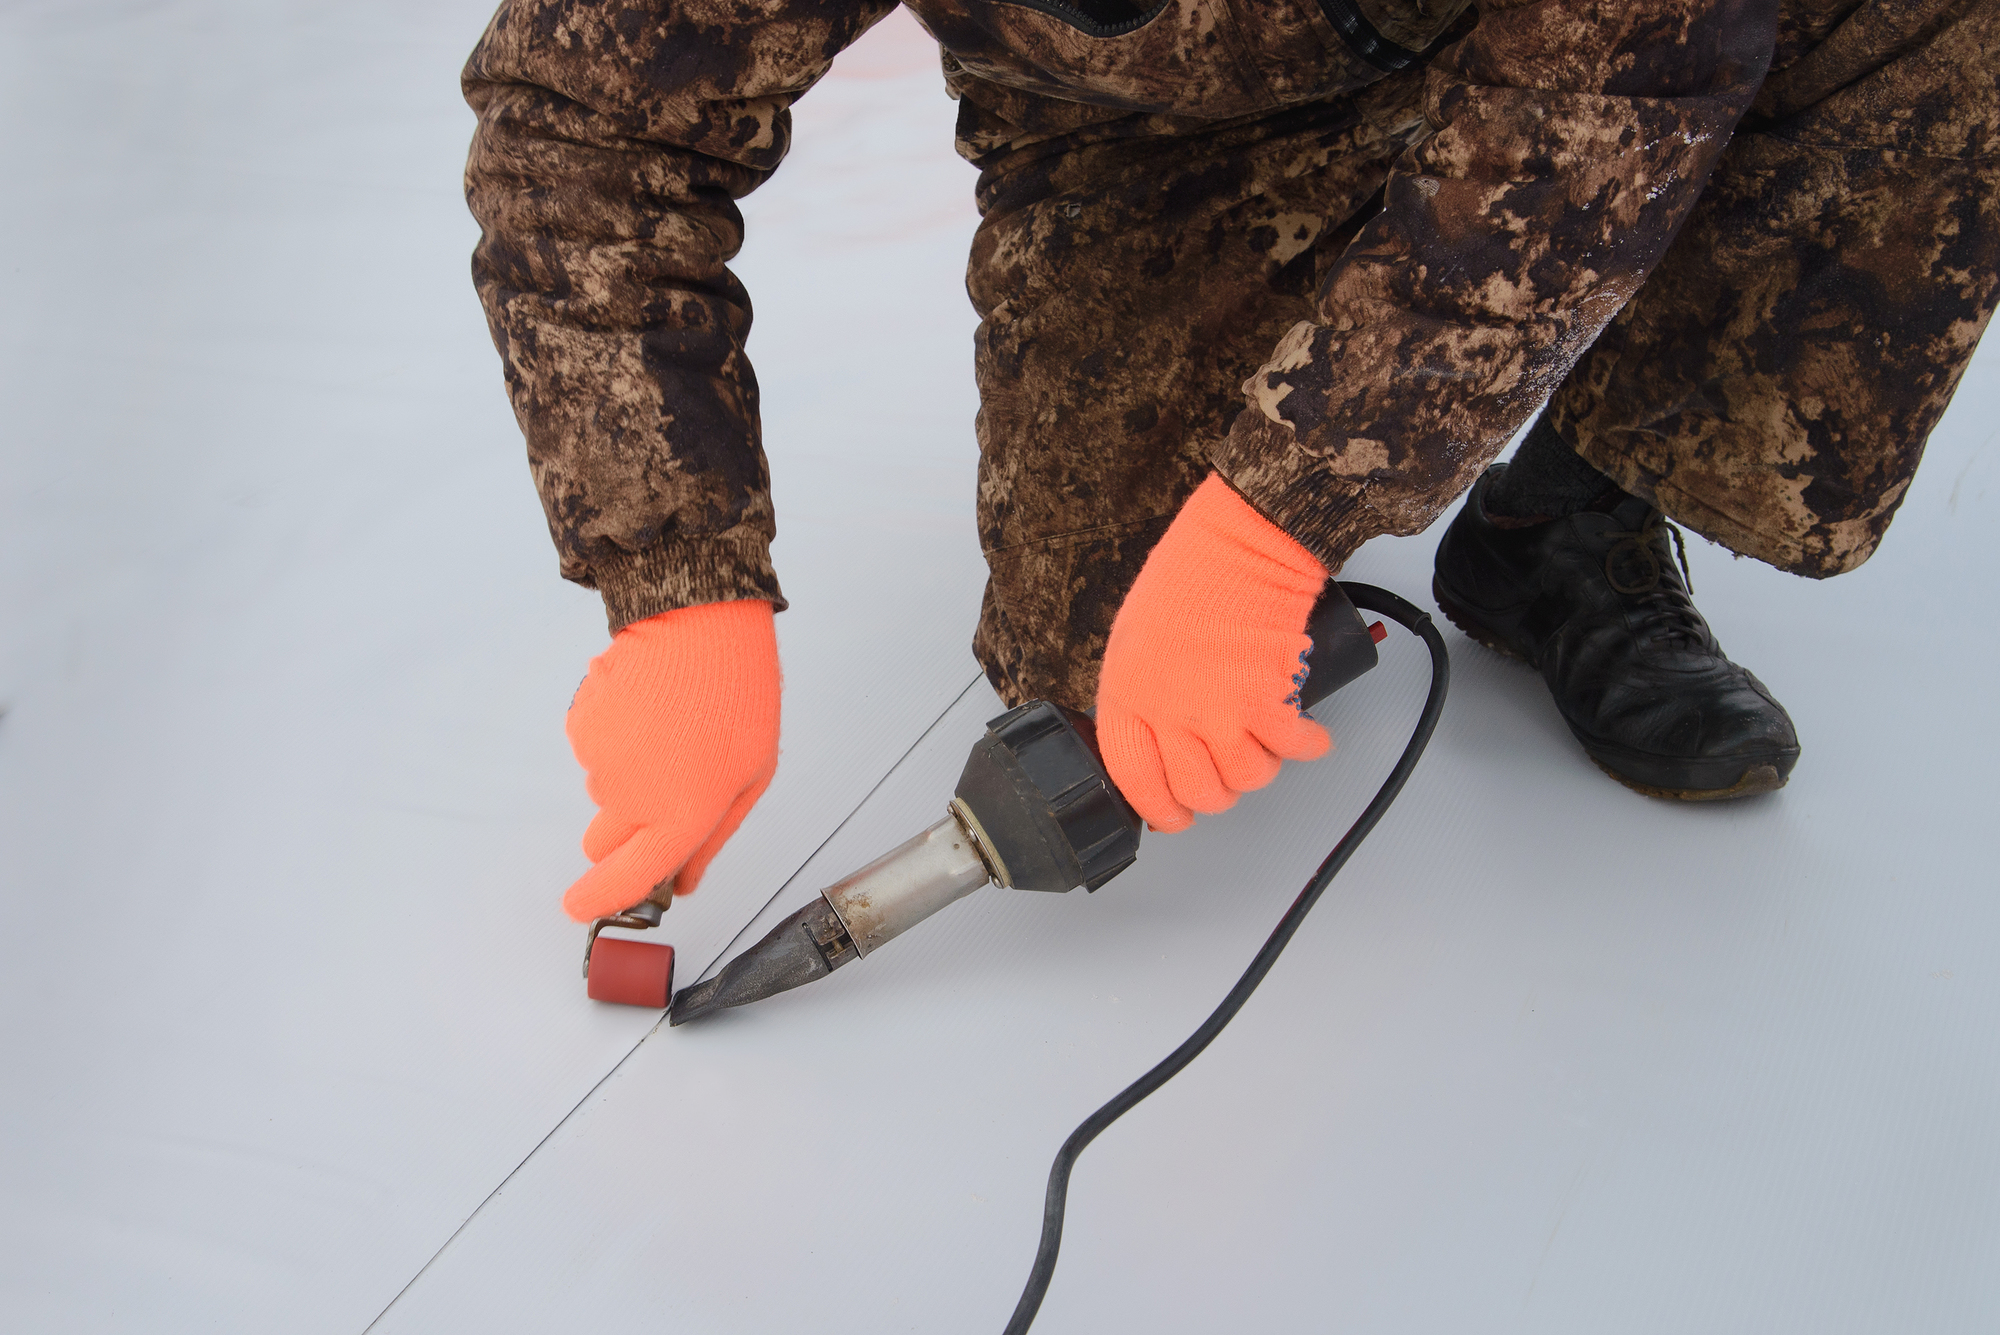 Waterproofing and insulation at construction site, roof sealing process of synthetic membrane with Hot Air Hand Tool. New protection technology. Closeup